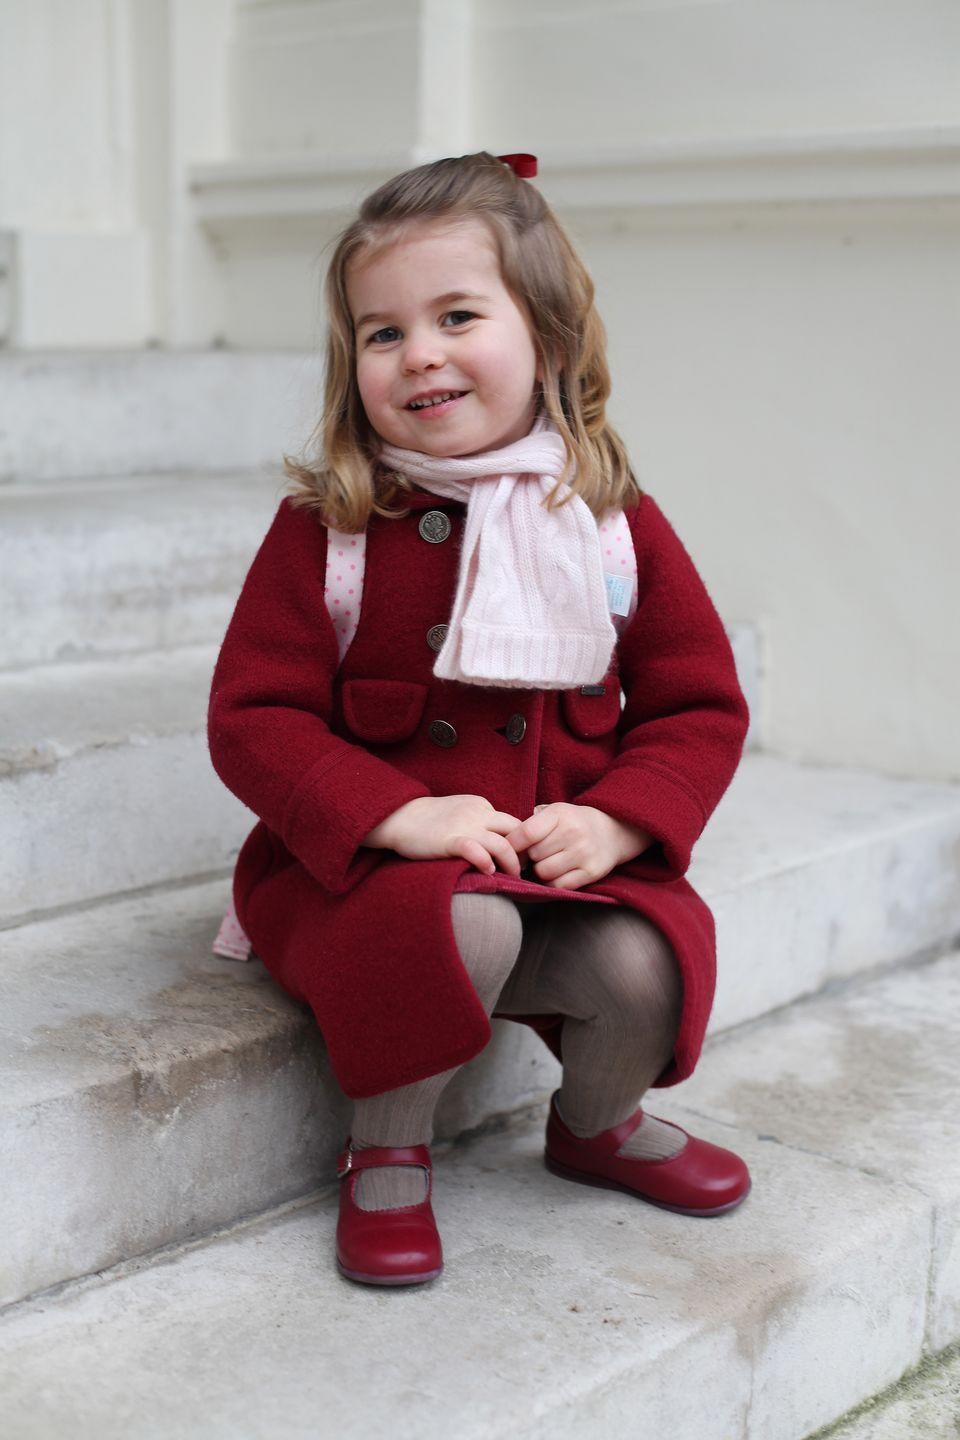 <p>Both photos, taken by the Duchess of Cambridge, show Princess Charlotte all smiles and bundled up before setting off for her big day. </p>